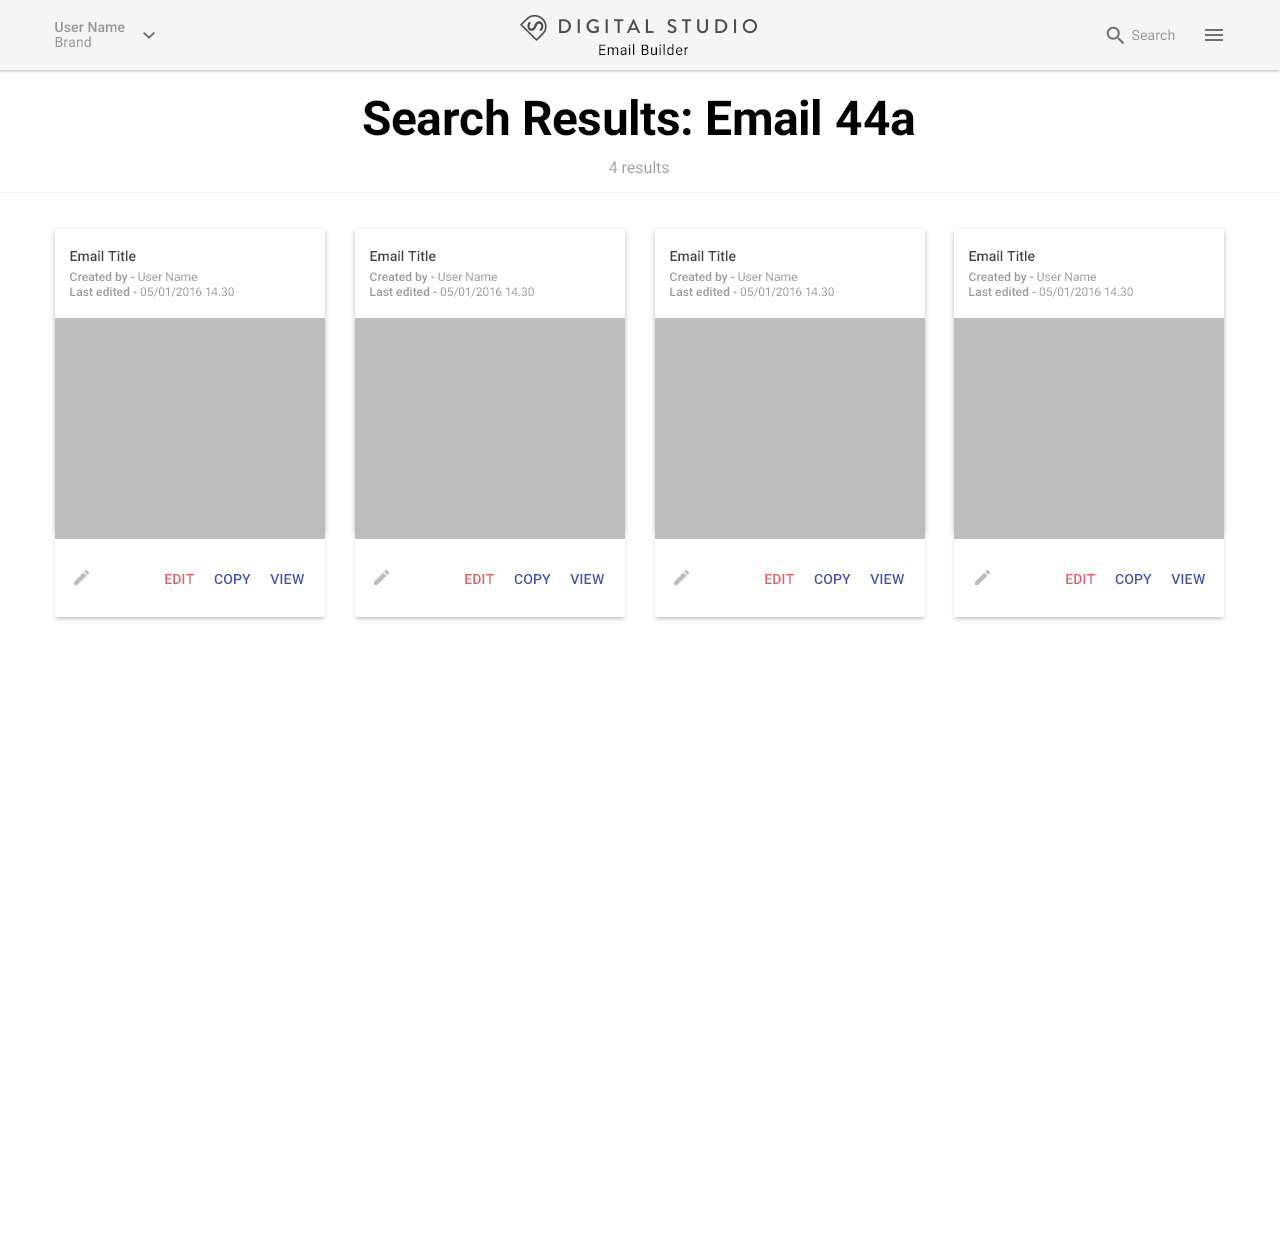 02_DS_Email_Builder_SEARCH_RESULTS